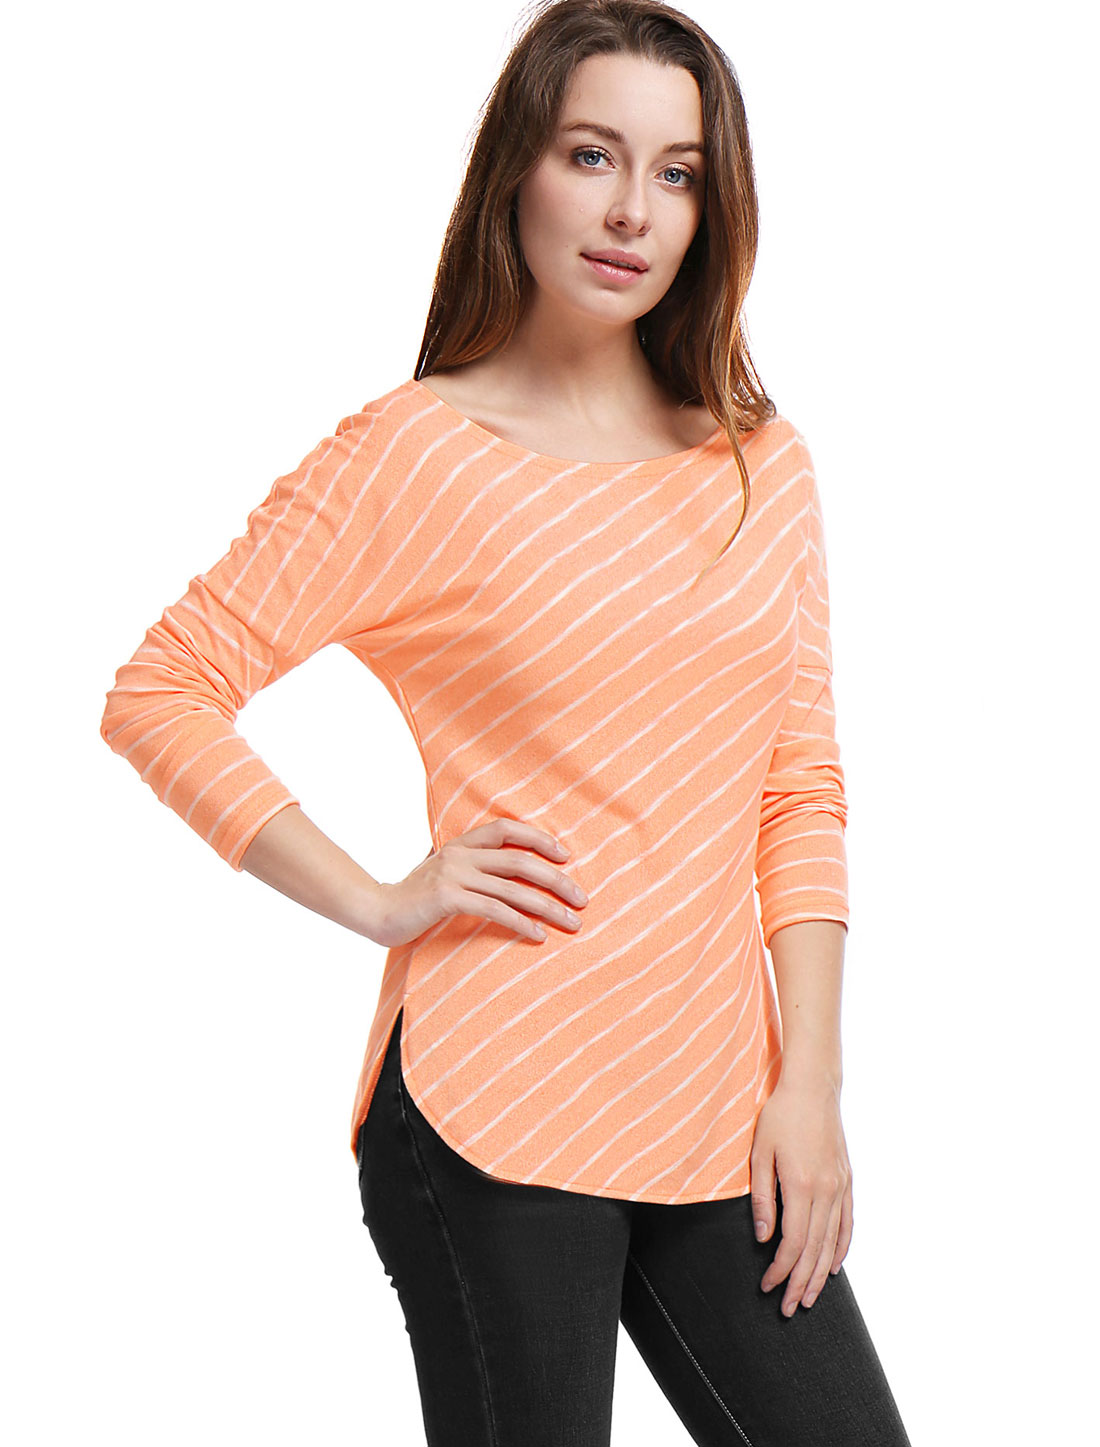 Women Stripes Scoop Neck Long Drop Sleeves Top Orange S